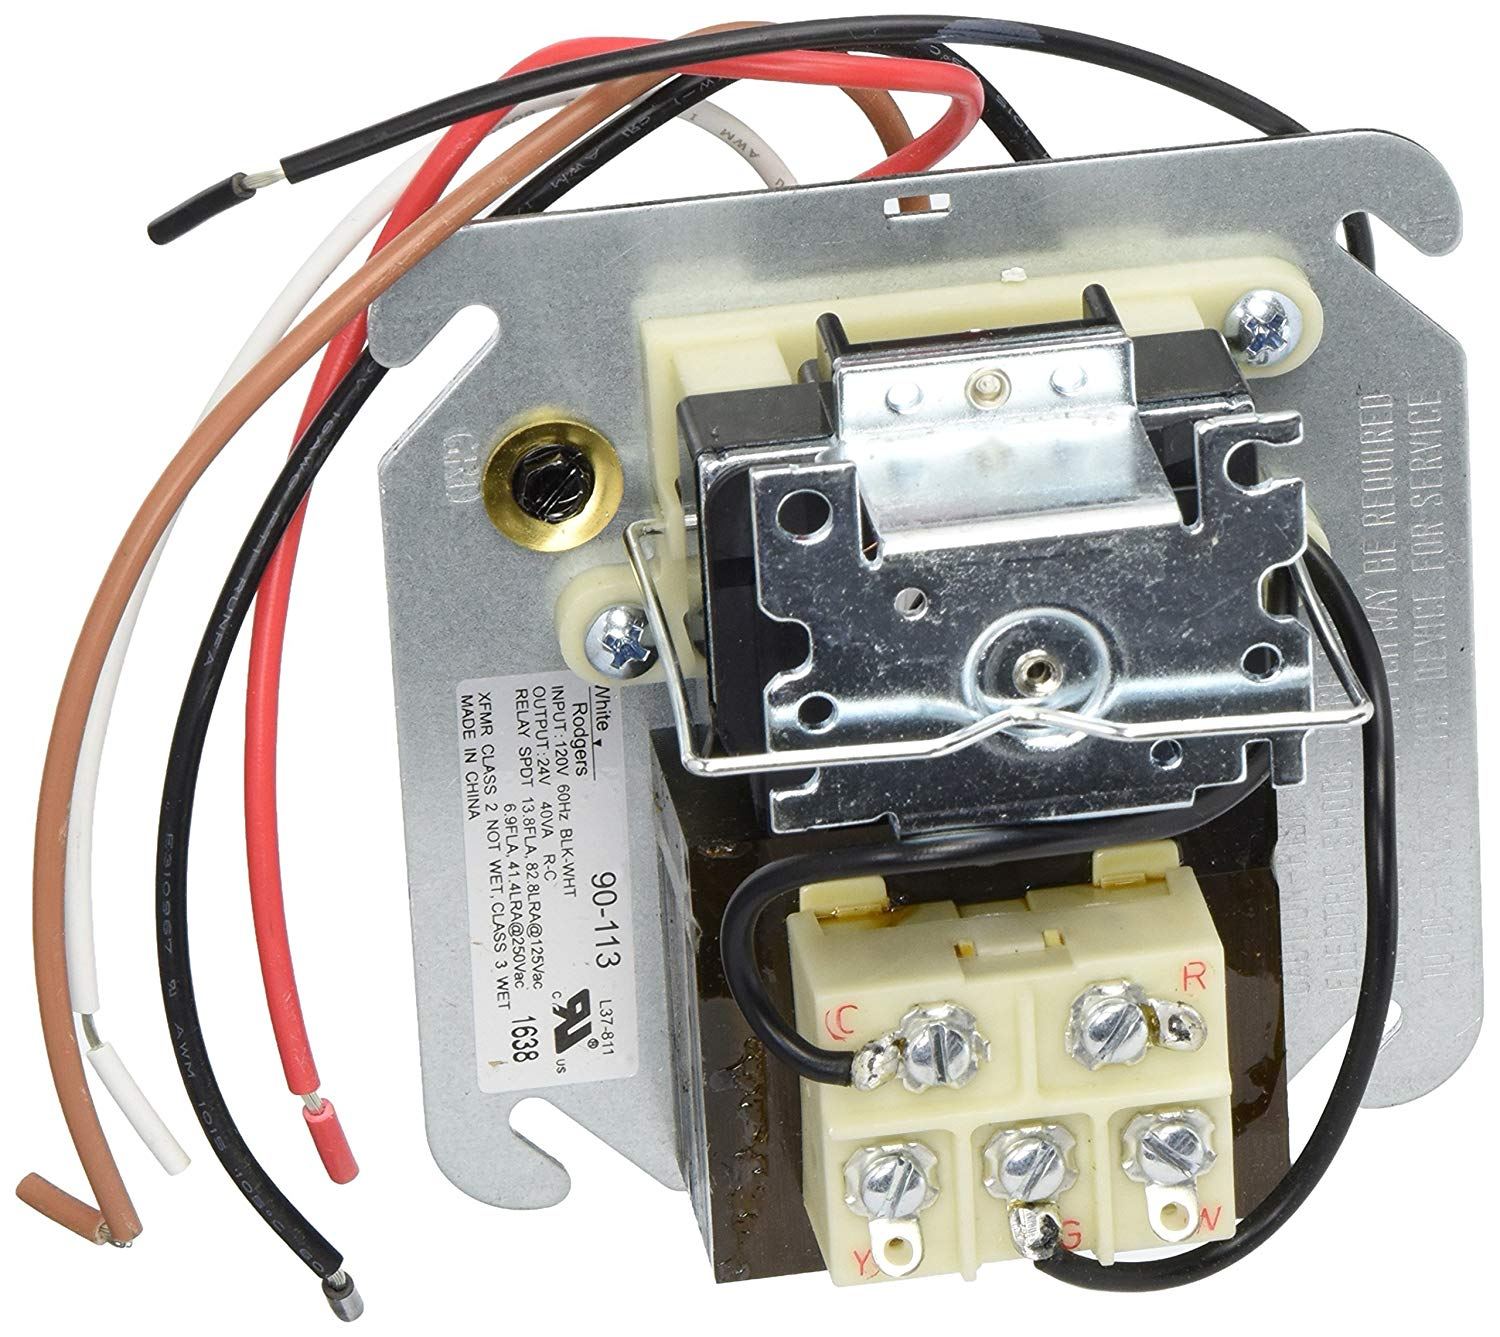 Relay Wiring Diagram 90 380 Heavy Duty - Wesbar Wiring Harness -  caprice.tukune.jeanjaures37.fr | Relay Wiring Diagram 90 380 Heavy Duty |  | Wiring Diagram Resource